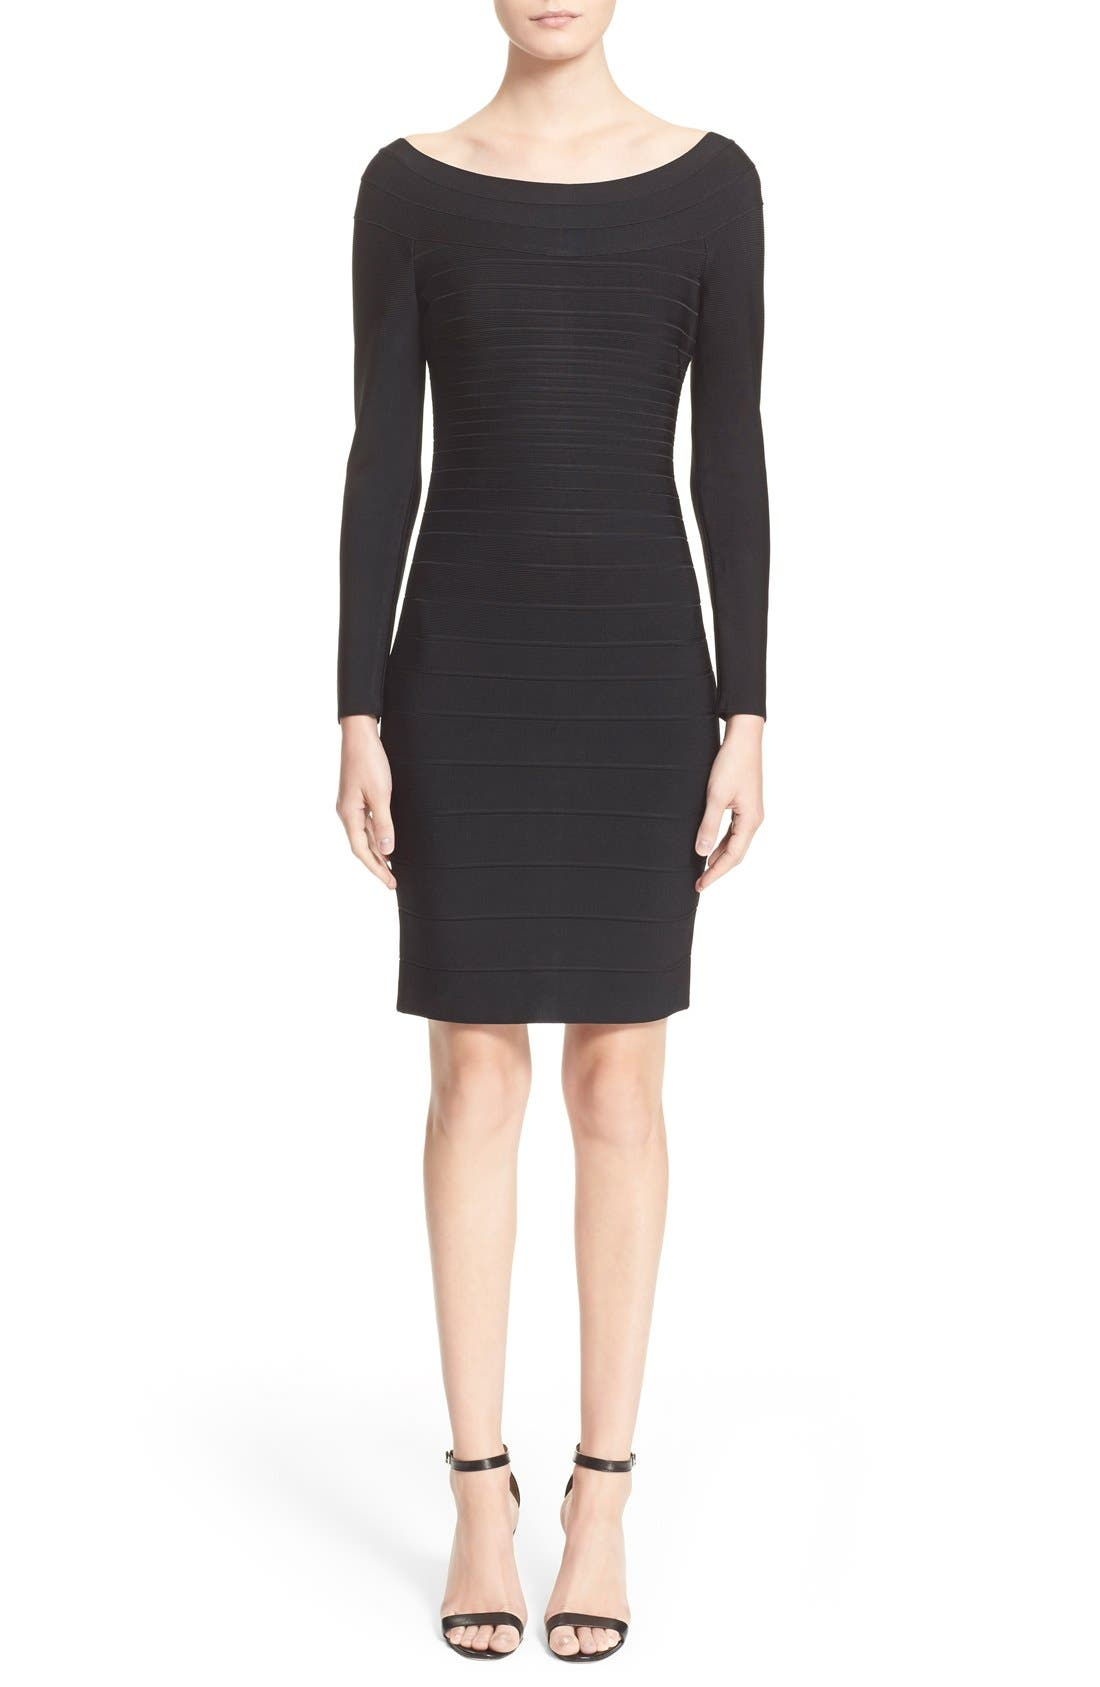 Alternate Image 1 Selected - Herve Leger Off Shoulder Bandage Dress